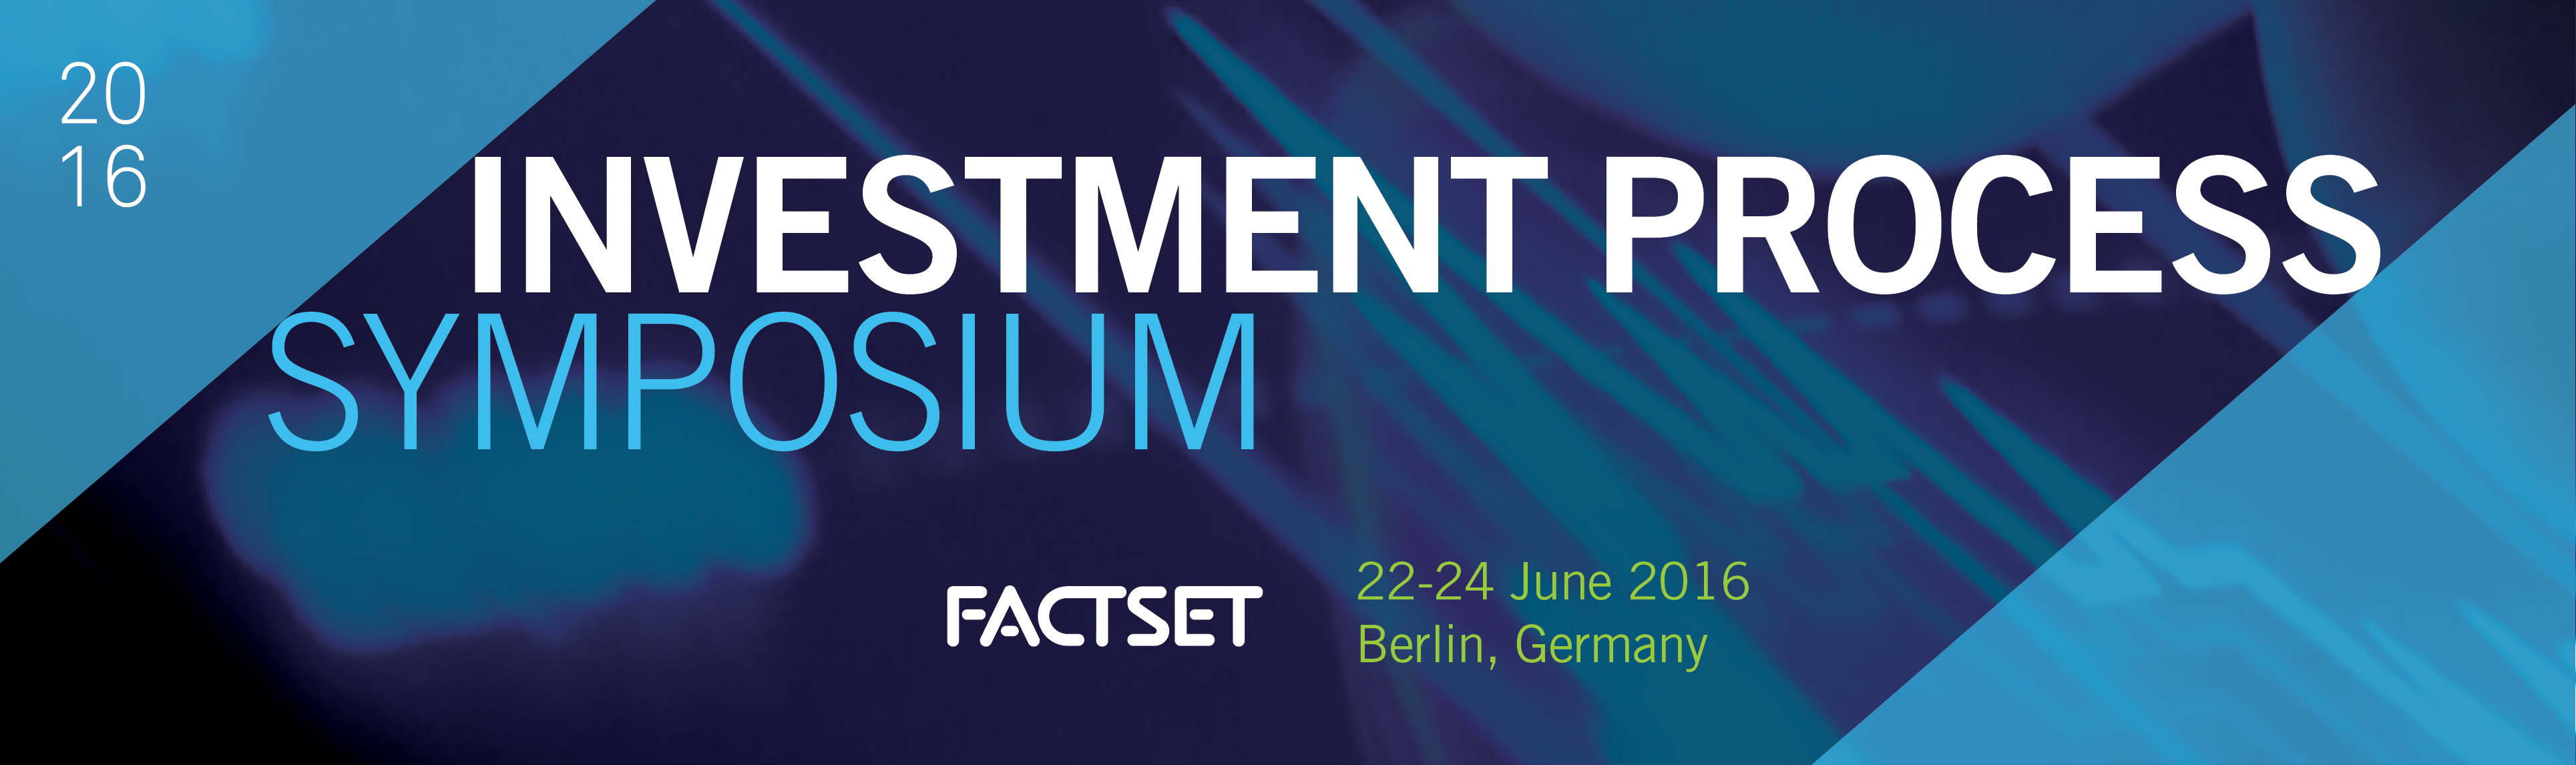 EMEA FactSet Investment Process Symposium